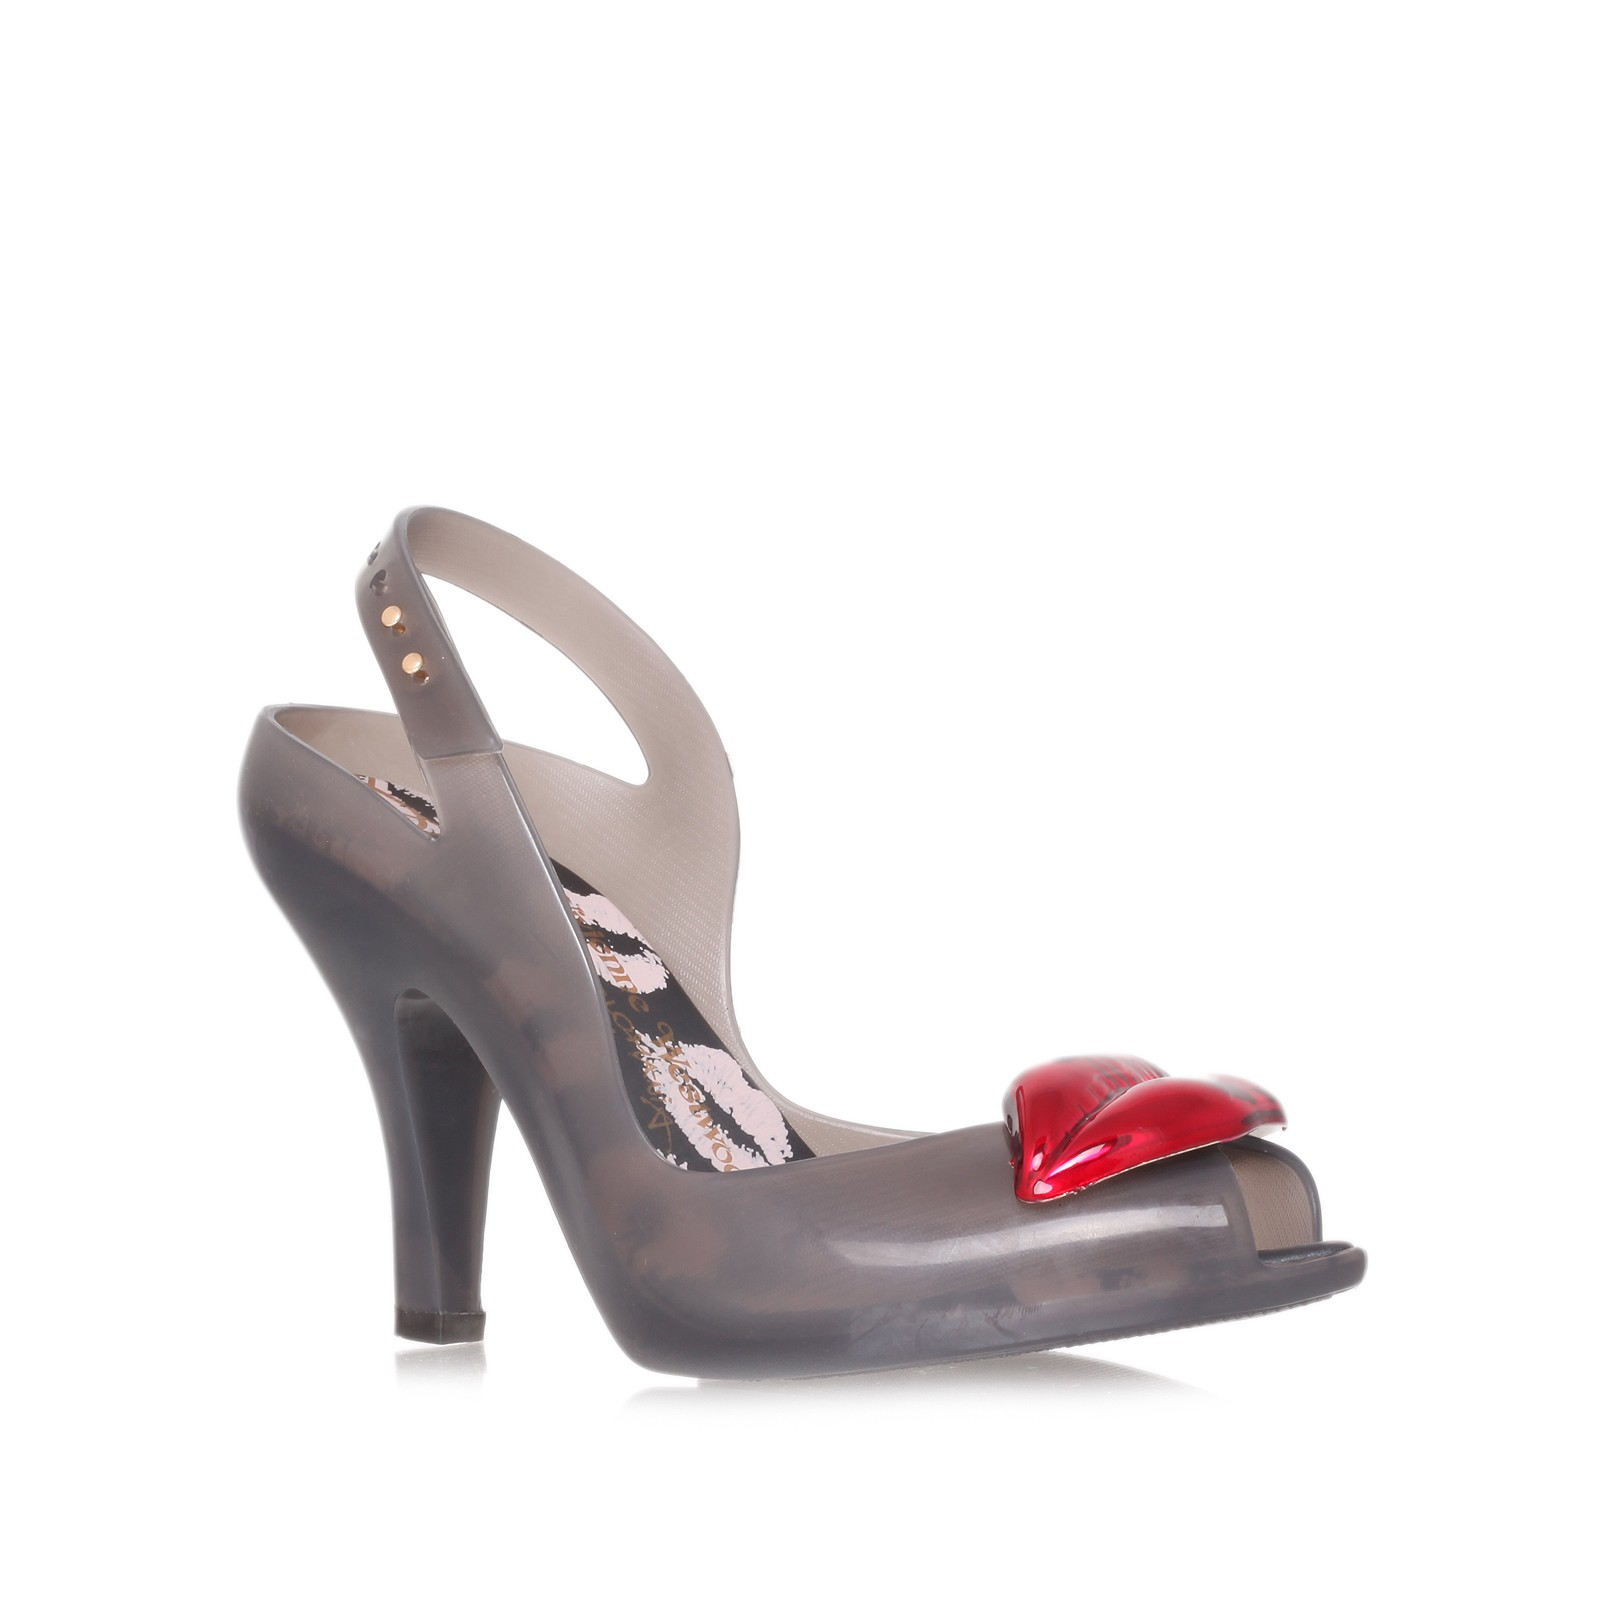 c412c406f211 Melissa + Vivienne Westwood Anglomania Vw Lady Dragon Lips in Gray ...